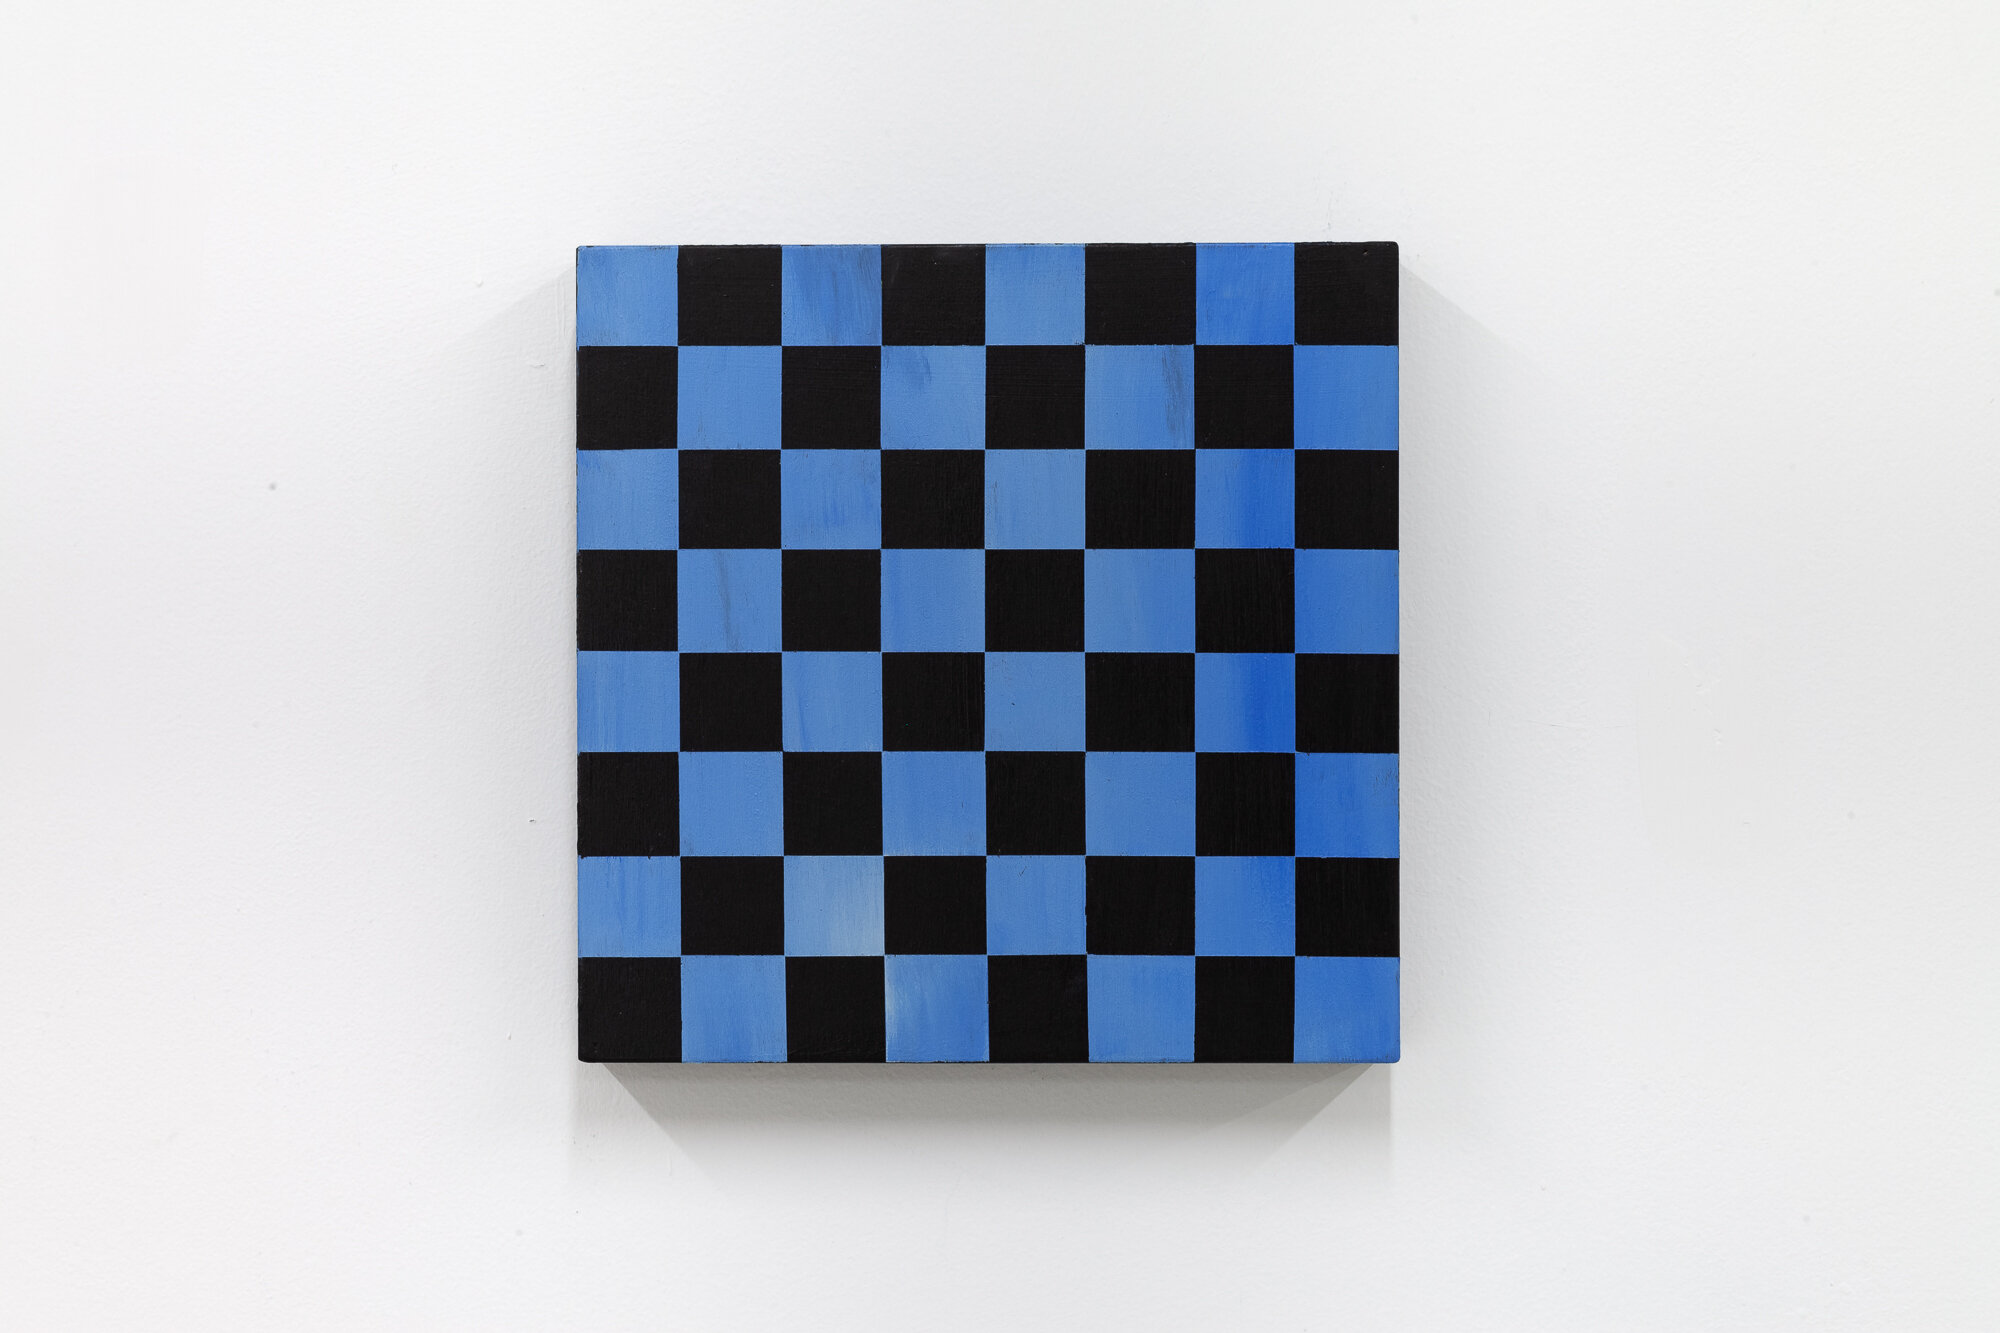 Image: Sarah Ortmeyer,  GRANDMASTER (light blue),  2019. Paint on wood.  INFERNO CHICAGO , curated by Stephanie Cristello, Chicago Manual Style (Chicago, IL). Copyright Sarah Ortmeyer. Courtesy of Dvir, Tel Aviv / Brussels. Photographer: Robert Chase Heishman.